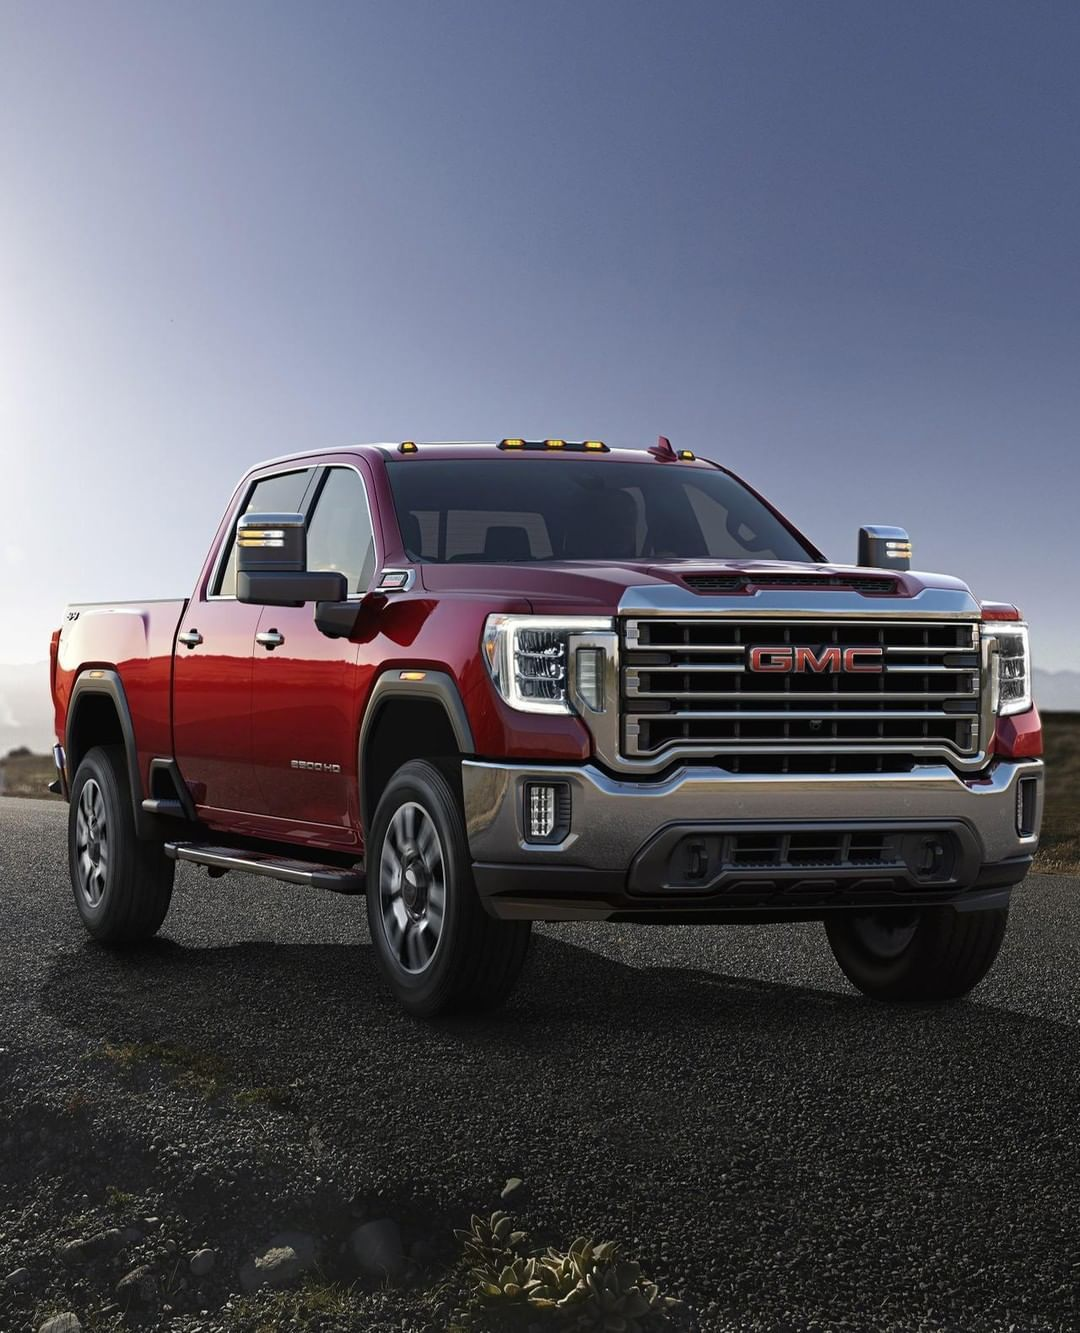 GMC Bills The New Sierra HD As The Most Capable Heavy-duty